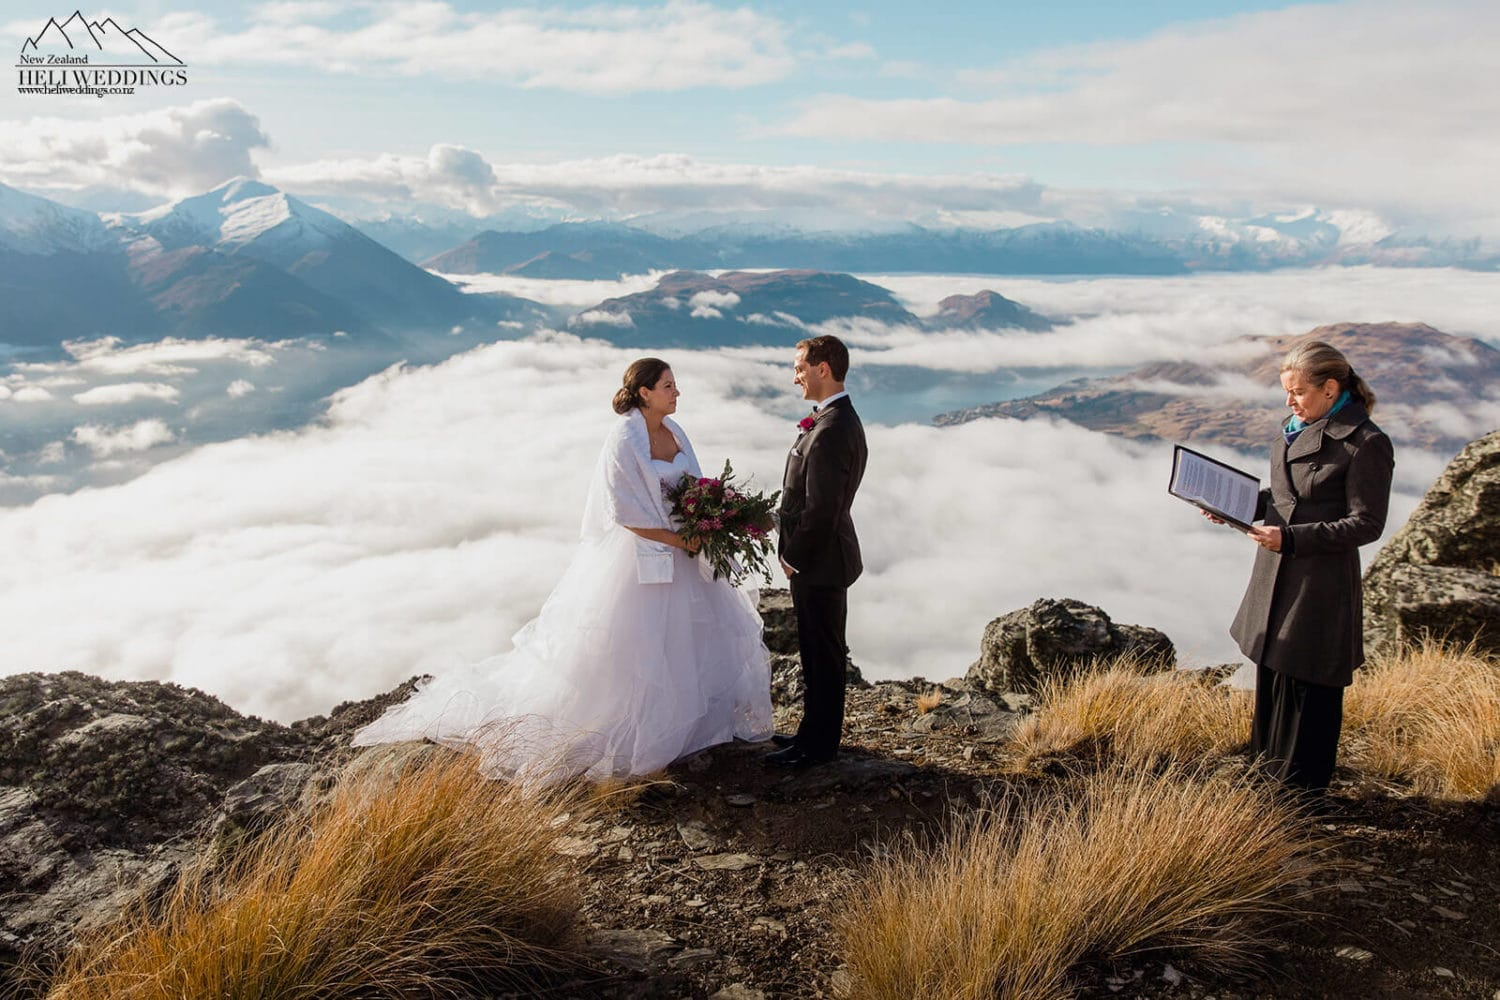 Wedding ceremony on Cecil Peak Ridge in Queenstown